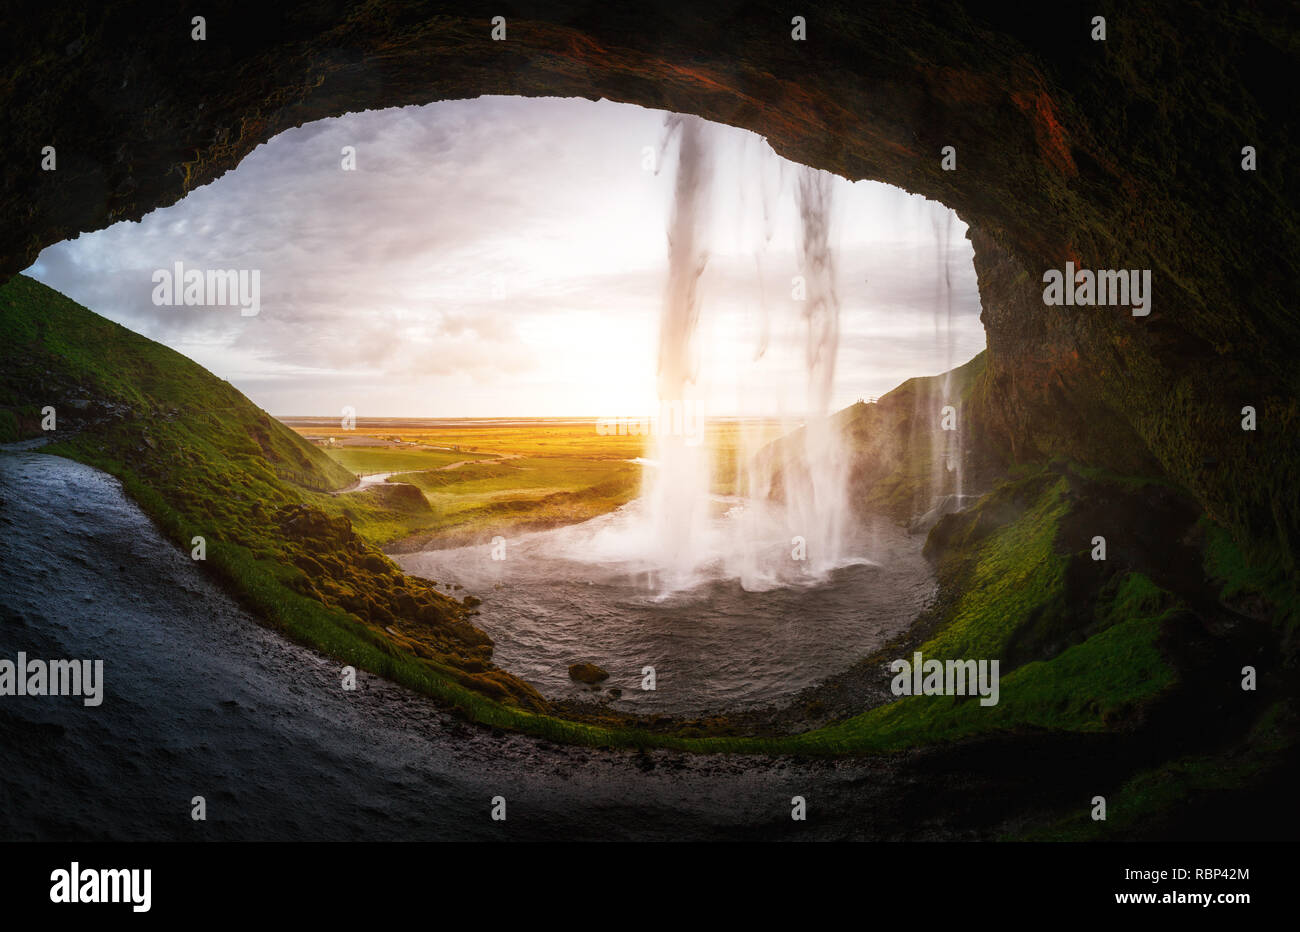 Perfect view of famous powerful Seljalandsfoss waterfall in sunlight. Dramatic and gorgeous scene. Popular tourist attraction. Location place Iceland, Stock Photo